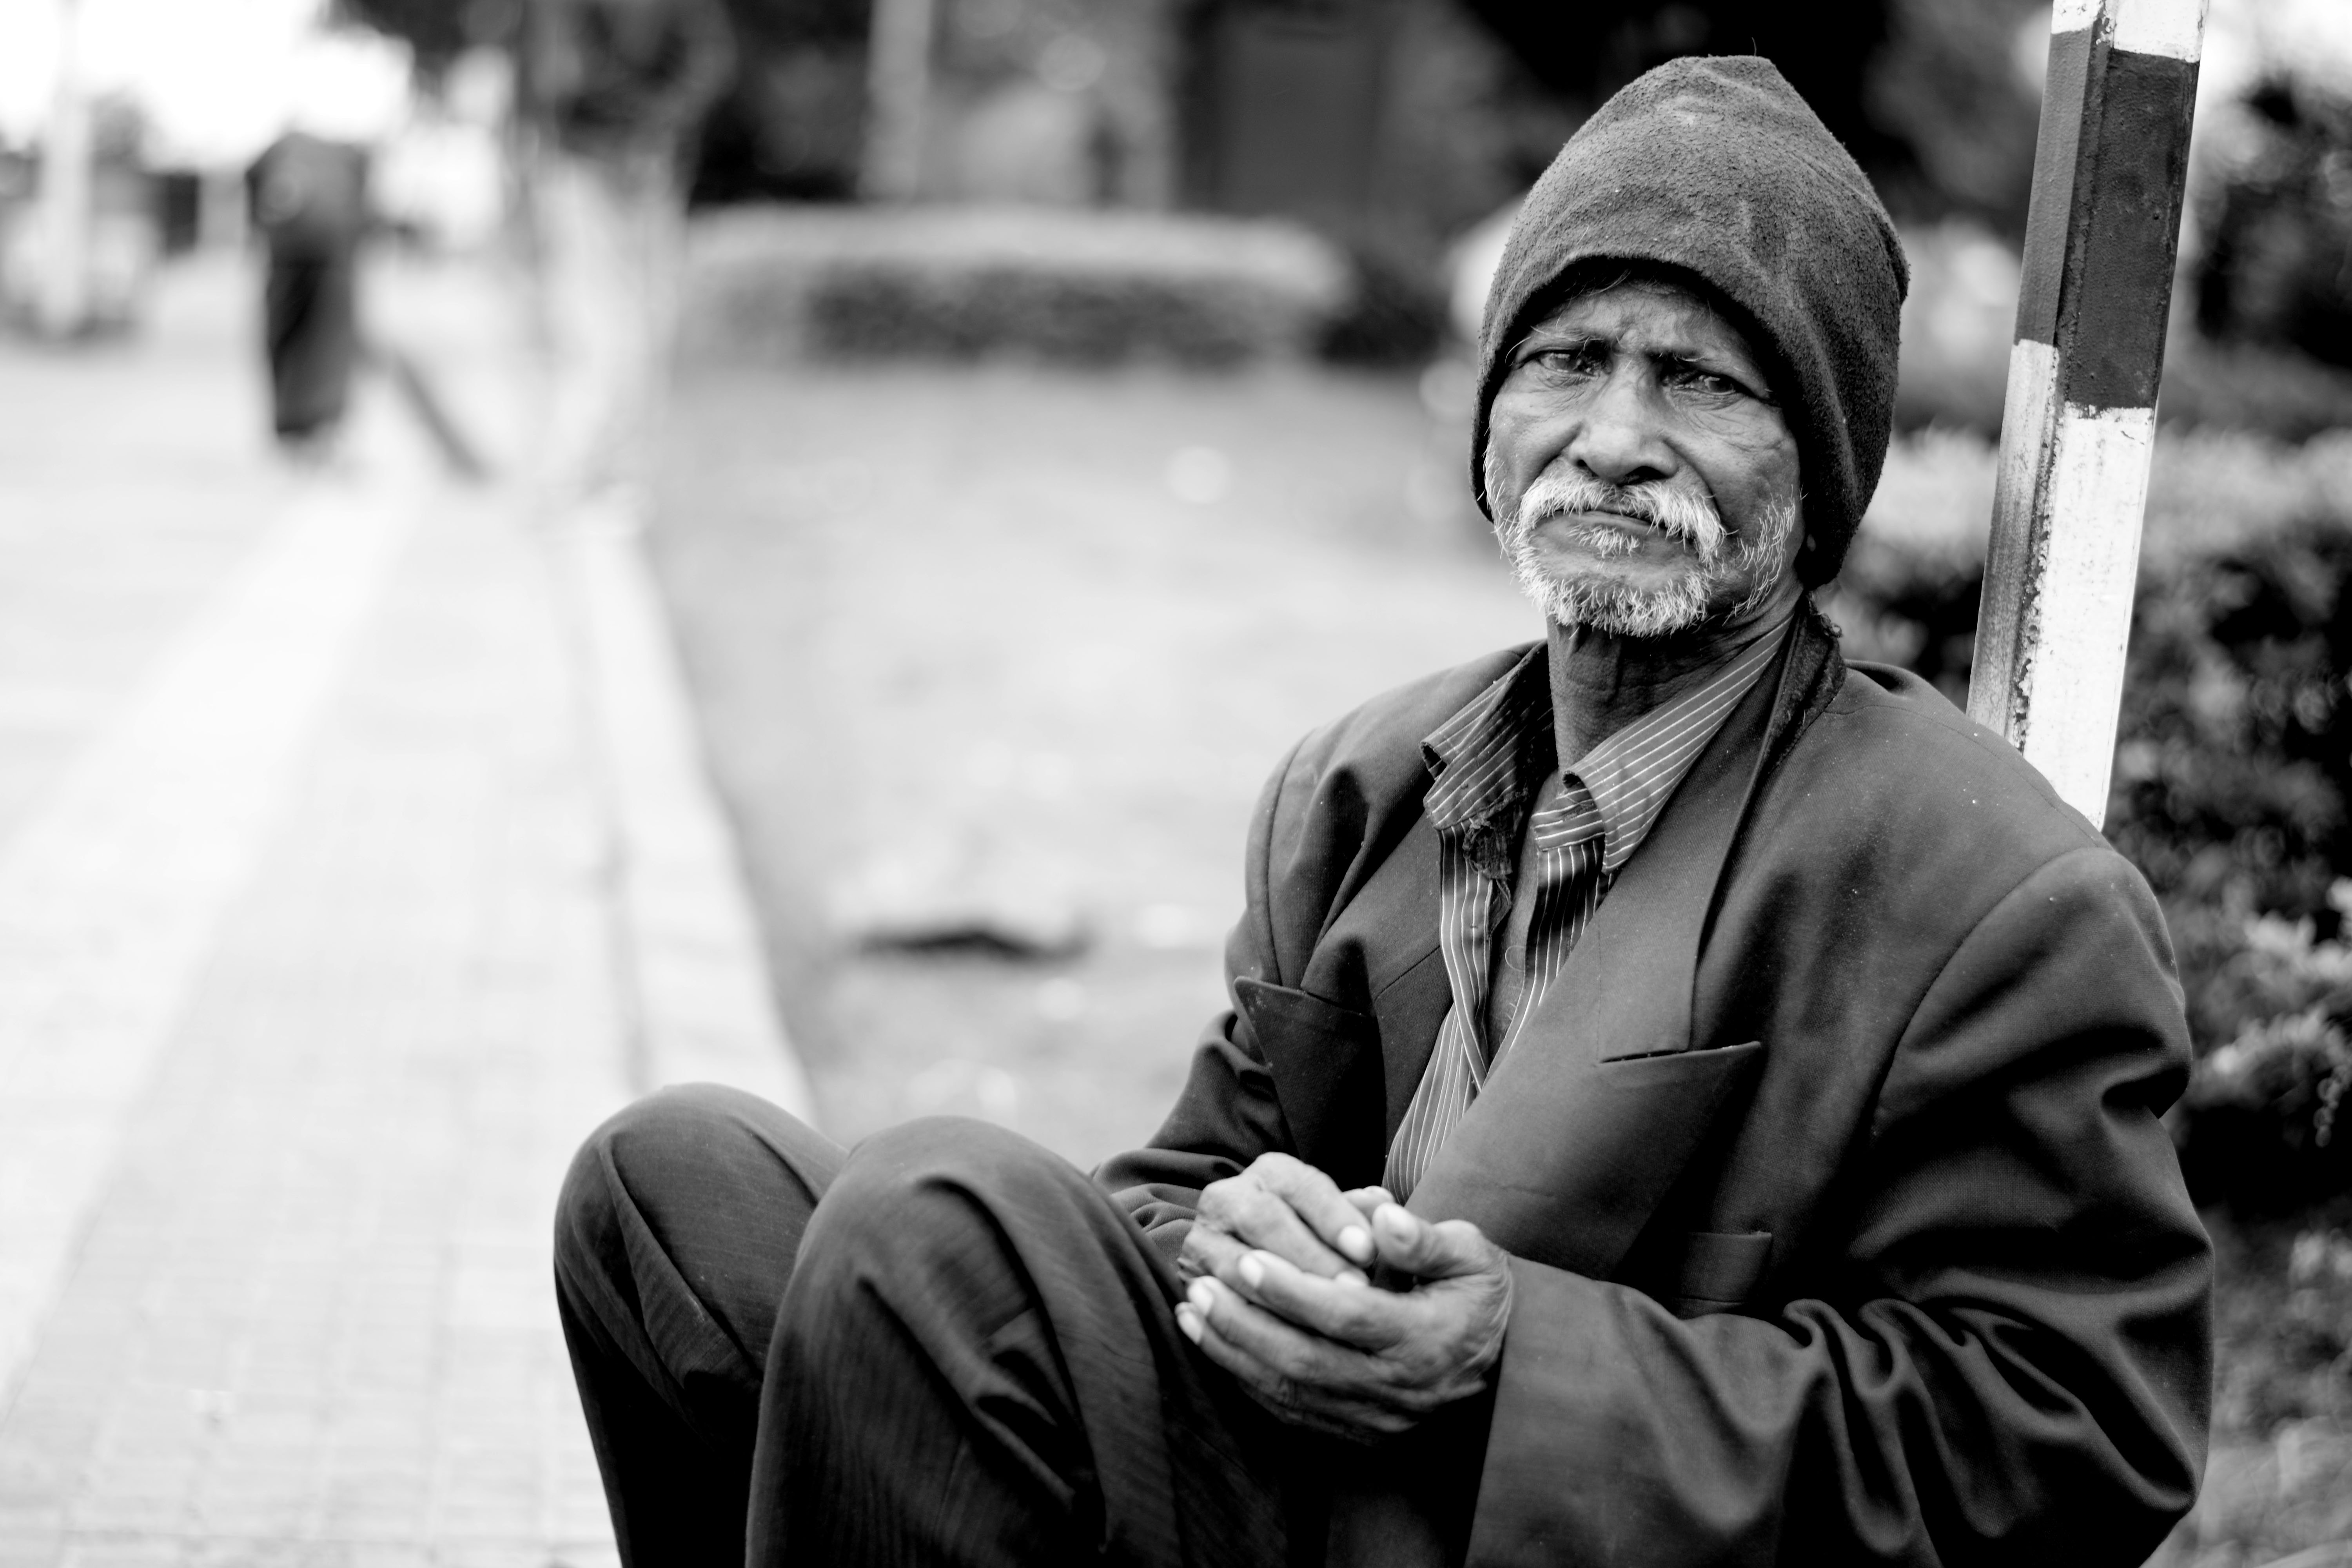 Black and white photo of a homeless man. | Photo: Pexels/ Pixabay